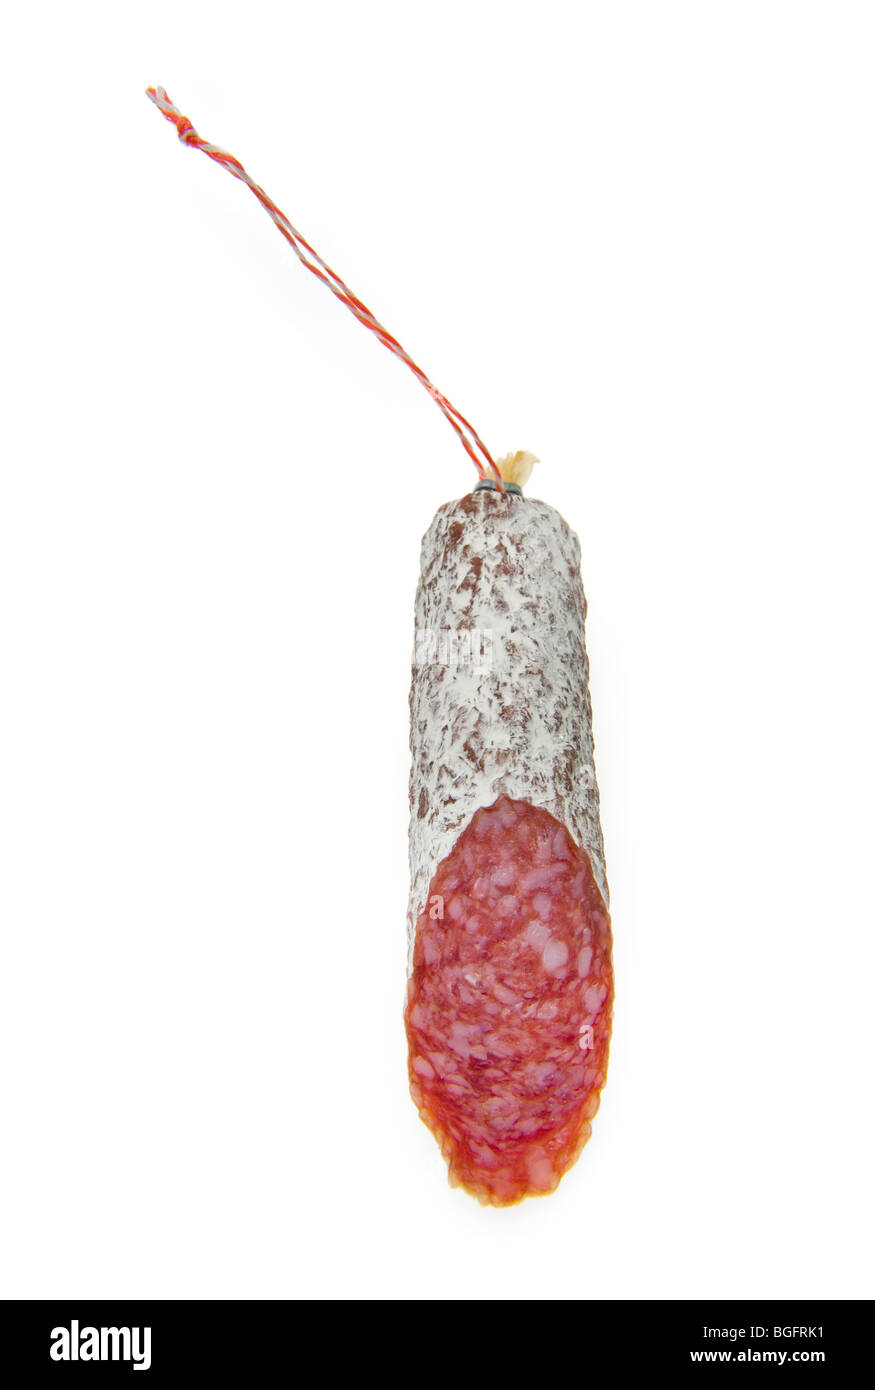 chorizo salami sausage spain traditional speciality  food  MILDEW  cuisine, cookery, cooking, health, healthy, orga - Stock Image